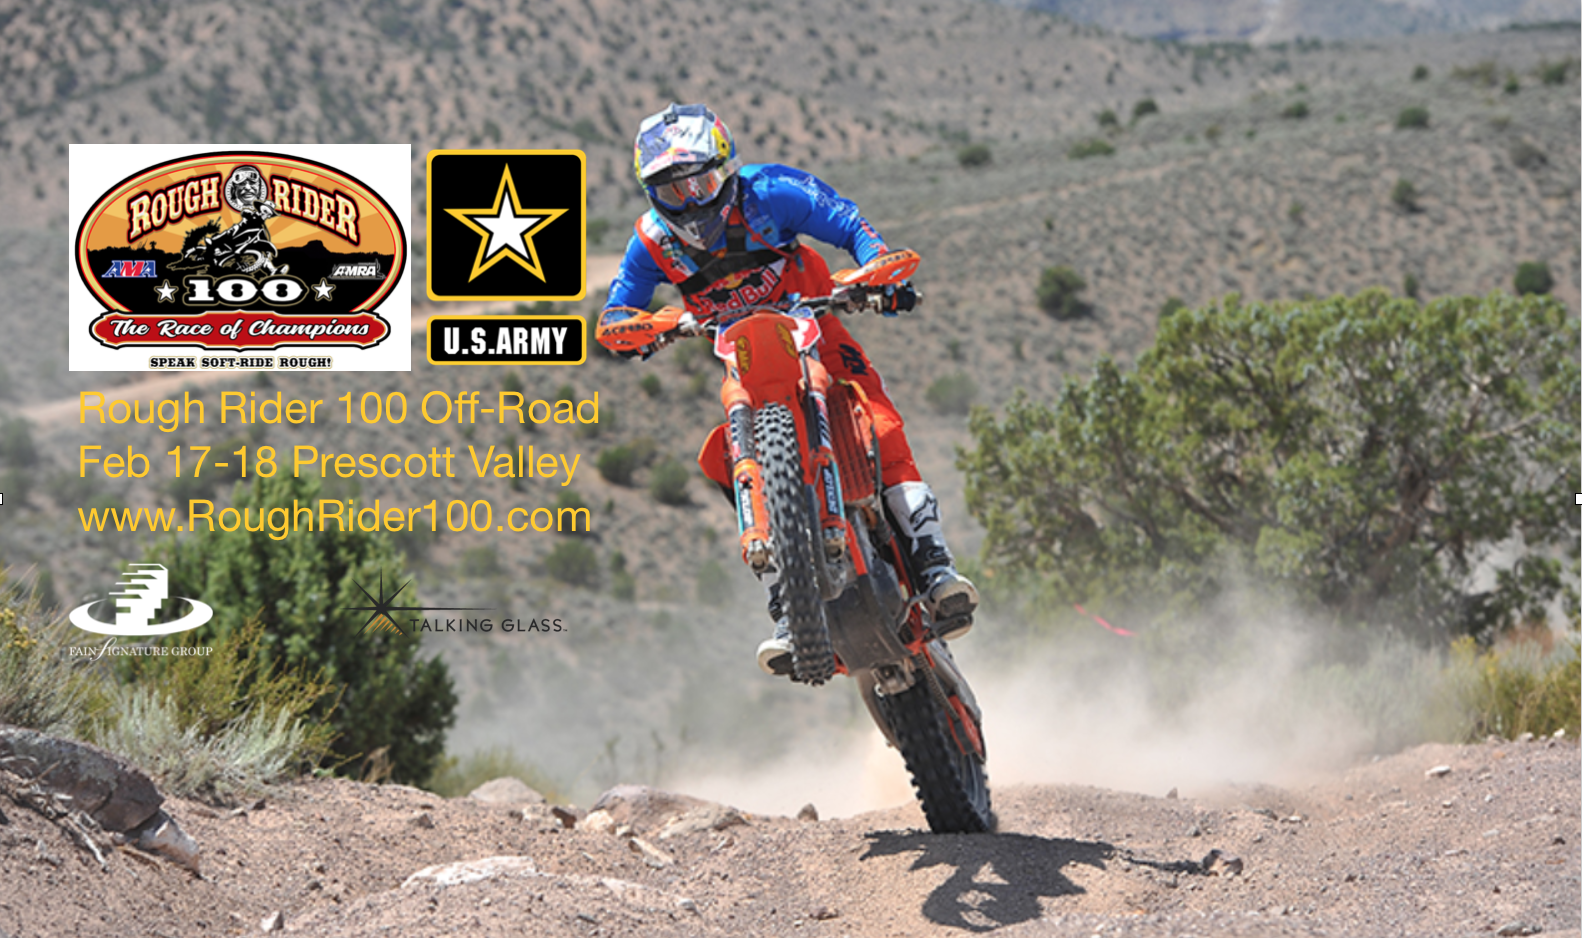 Prescott Valley Hosting 1st US Army Rough Rider 100 Off-Road Motorcycle Race